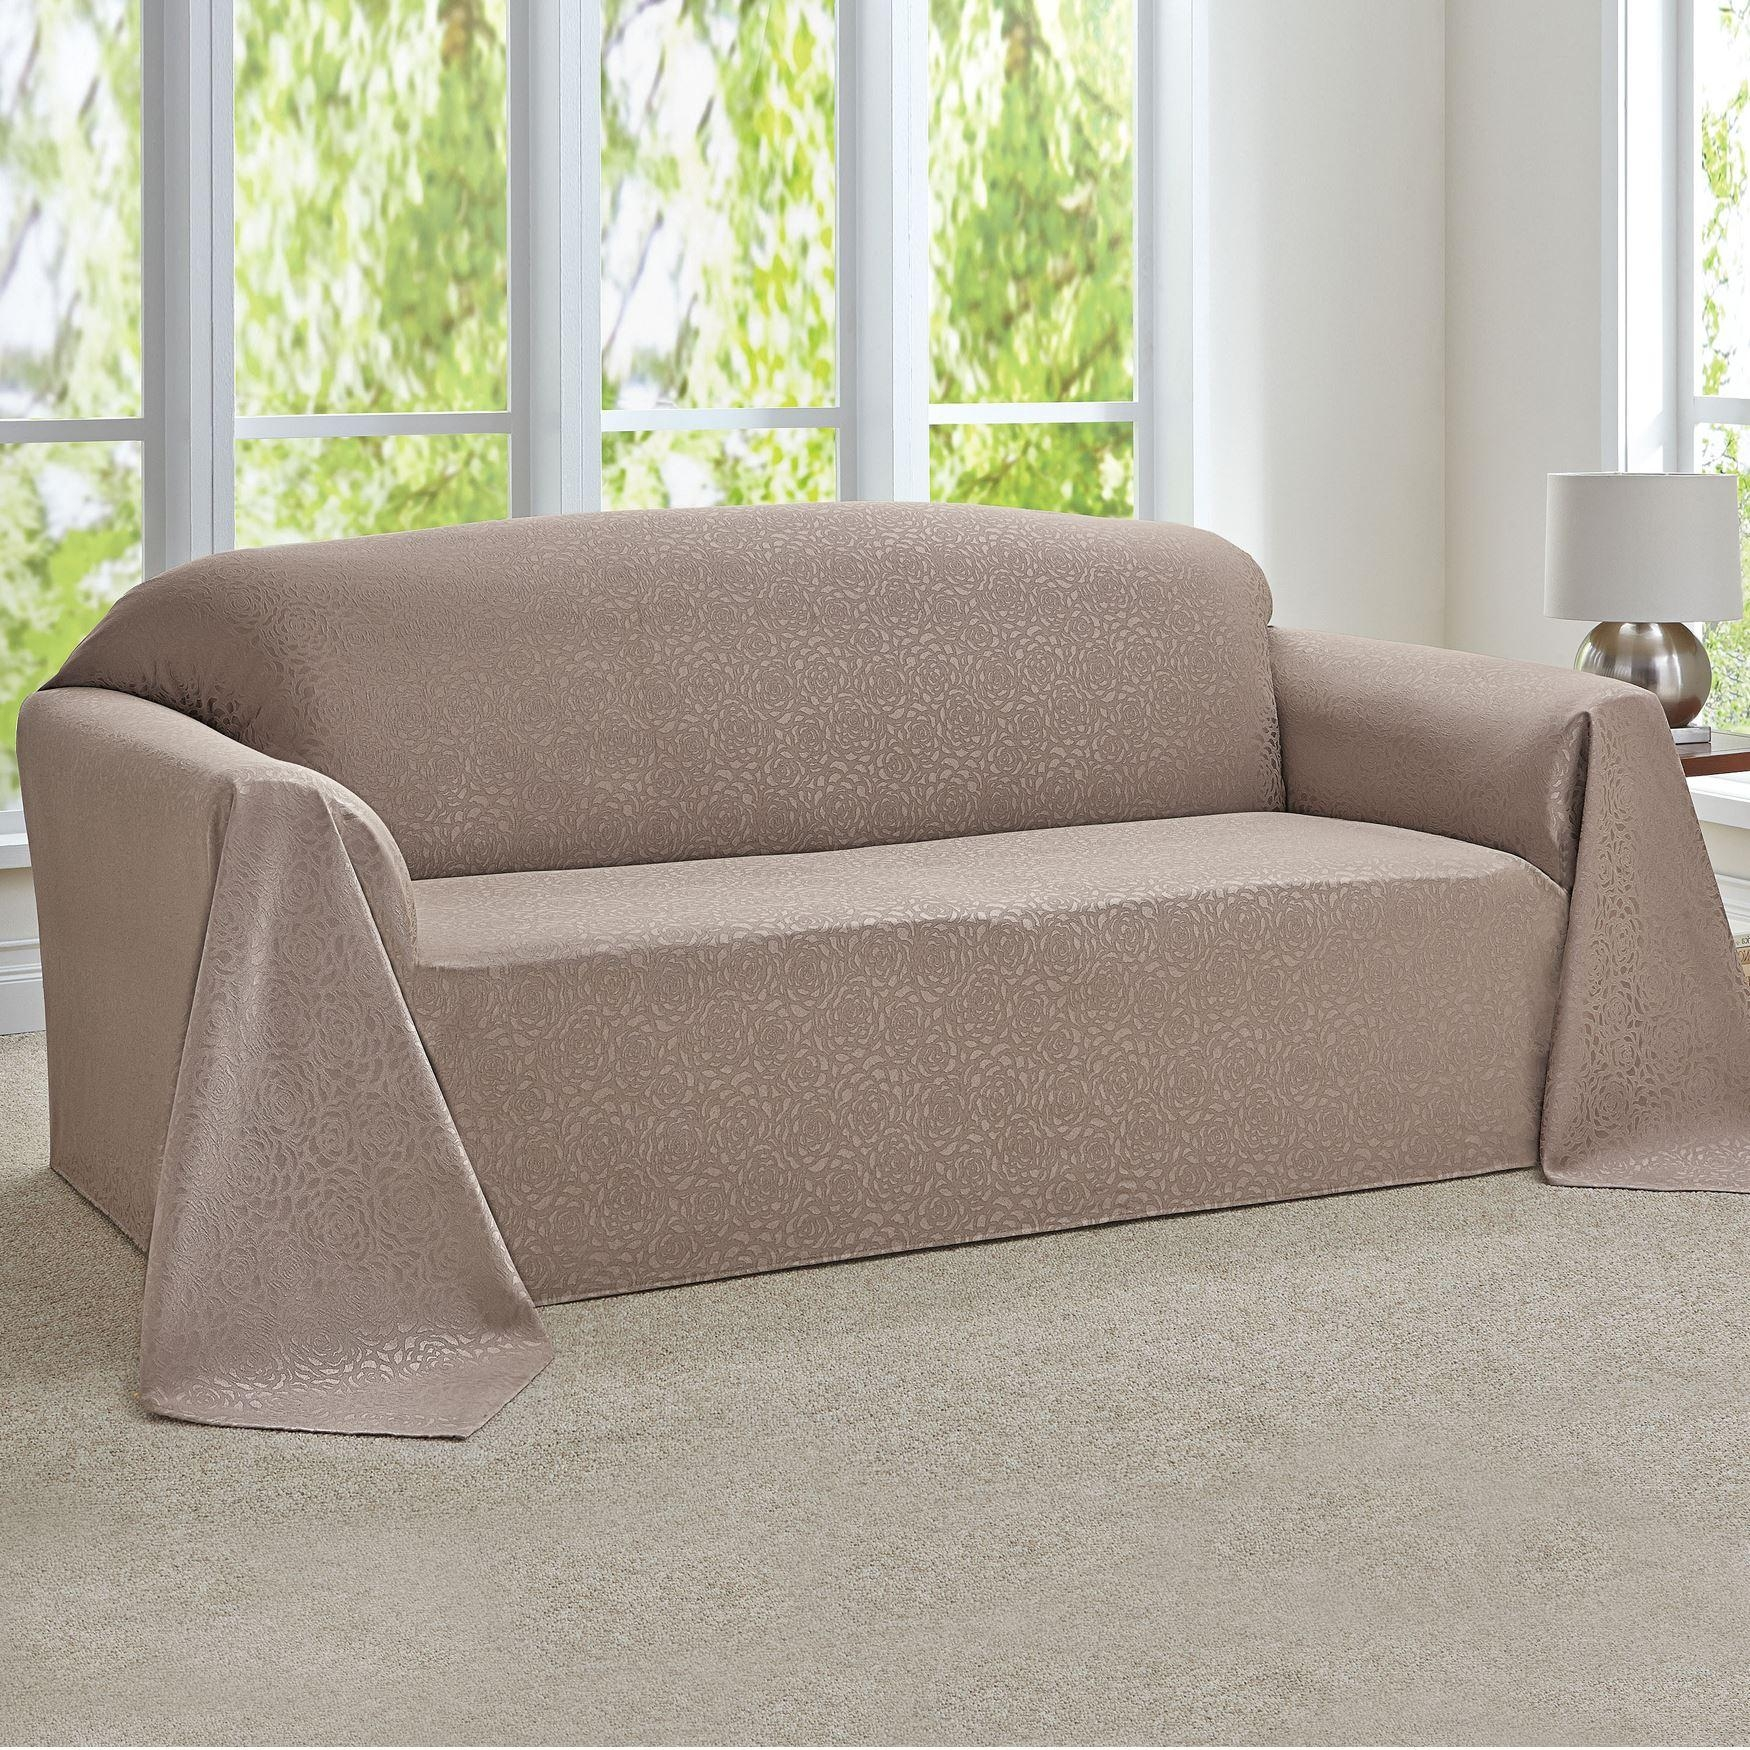 leather sofa covers ready made uk consumer reports best sofas 2018 latest settee ideas